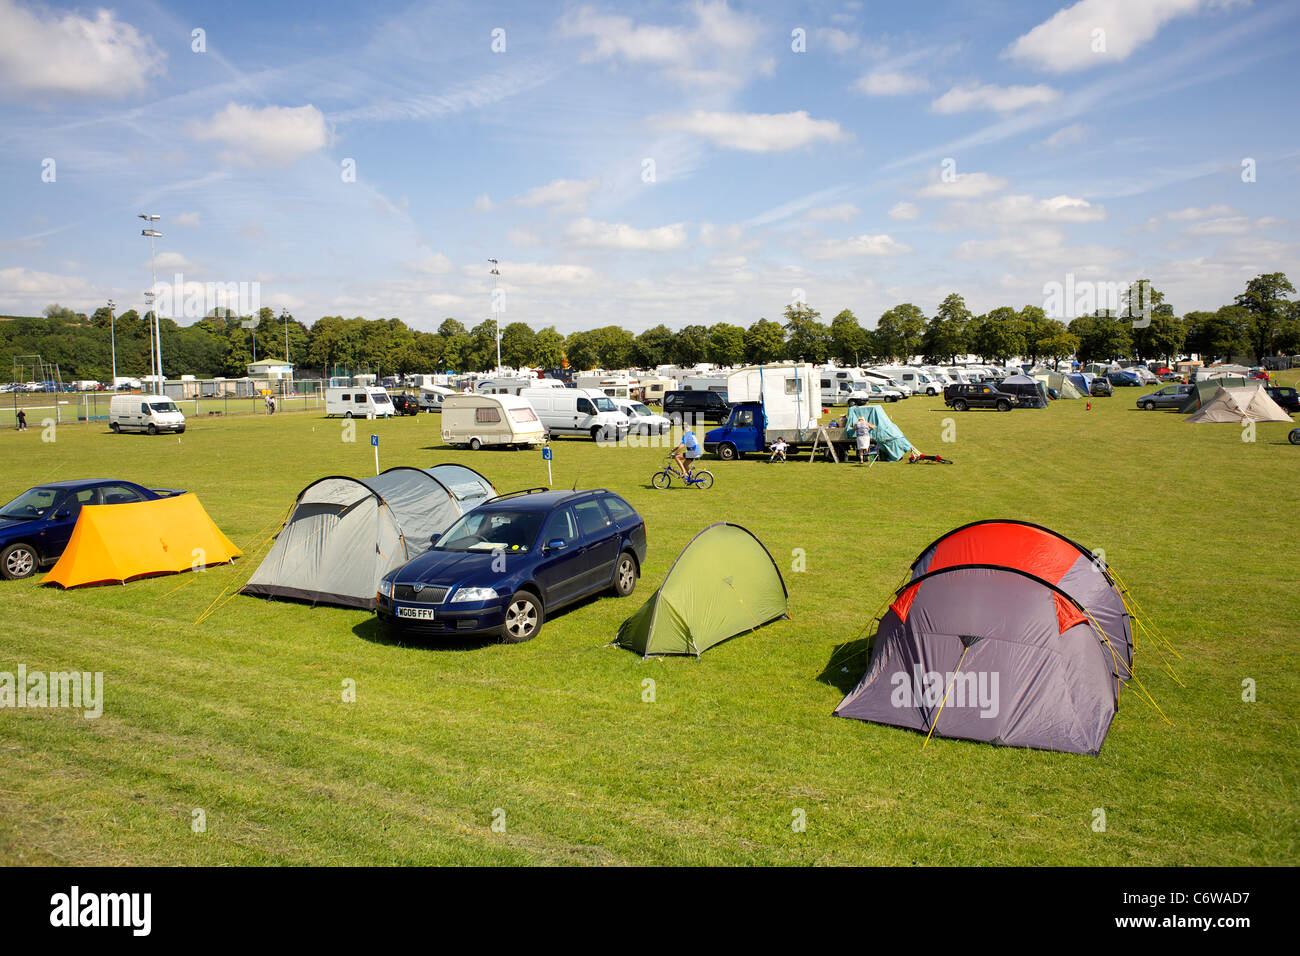 The Camp Site at the 2011 Inland Waterways Festival at Burton on Trent, Staffordshire, England, UK, GB, Great, Britain, - Stock Image